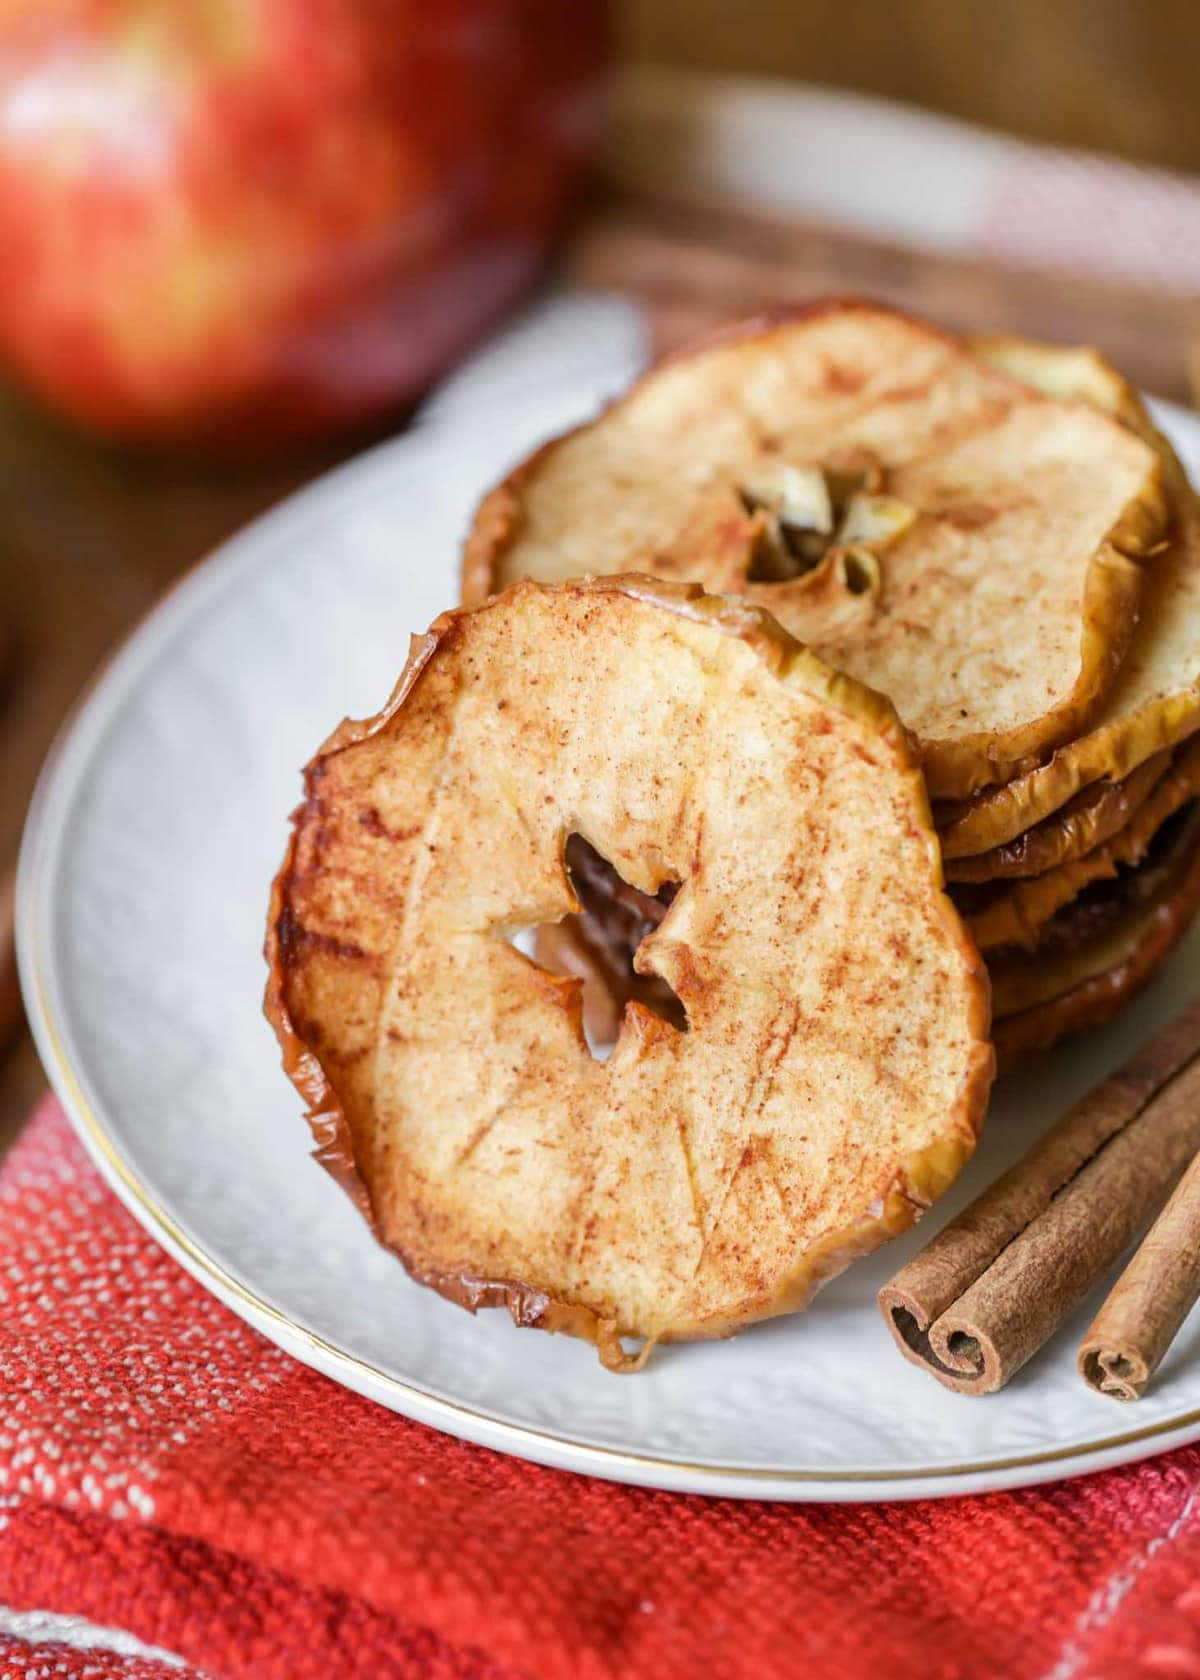 Baked Apple Chips Recipe stacked on plate